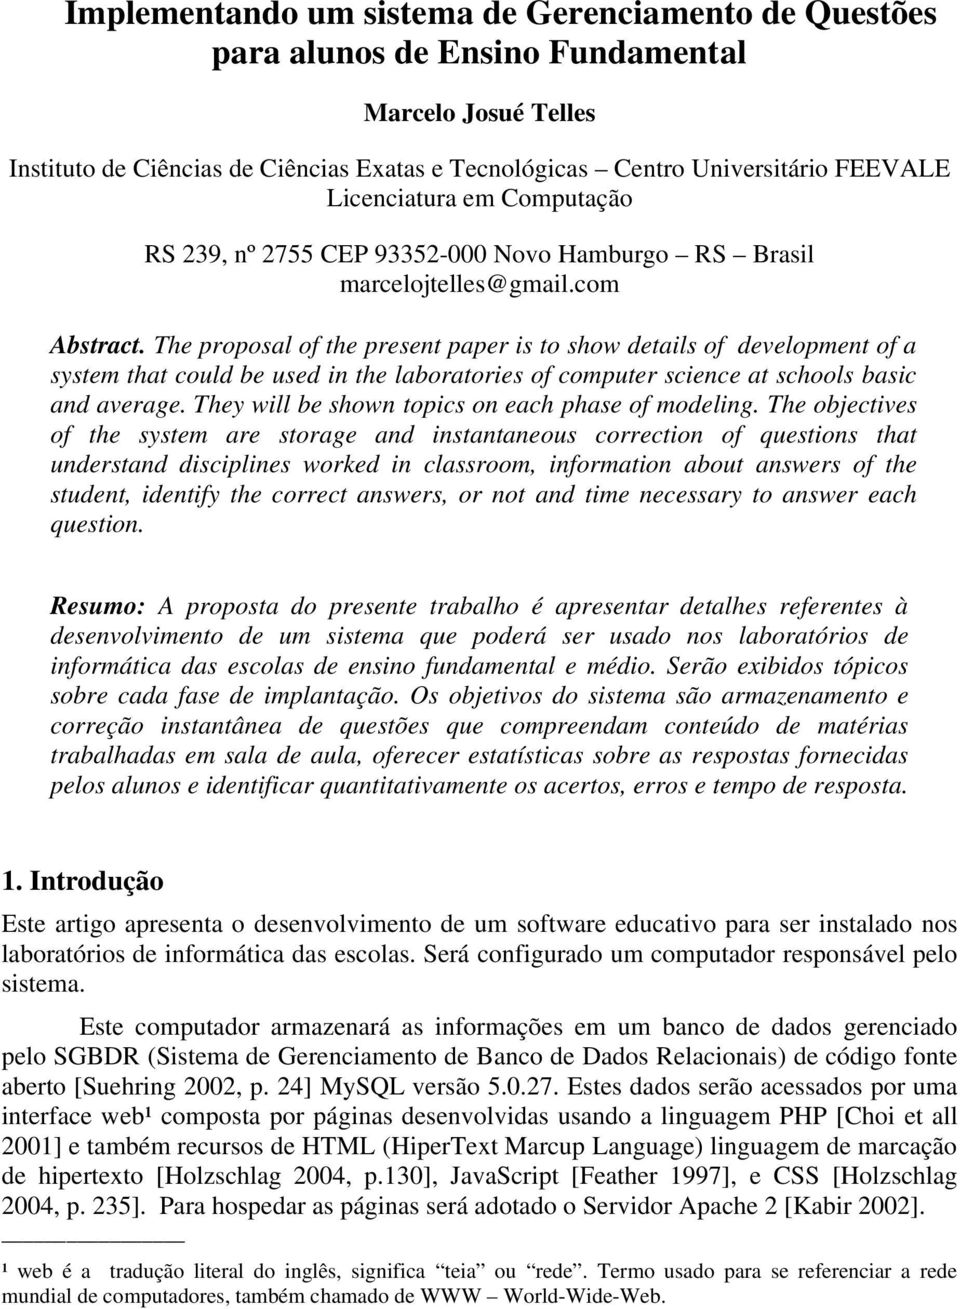 The proposal of the present paper is to show details of development of a system that could be used in the laboratories of computer science at schools basic and average.